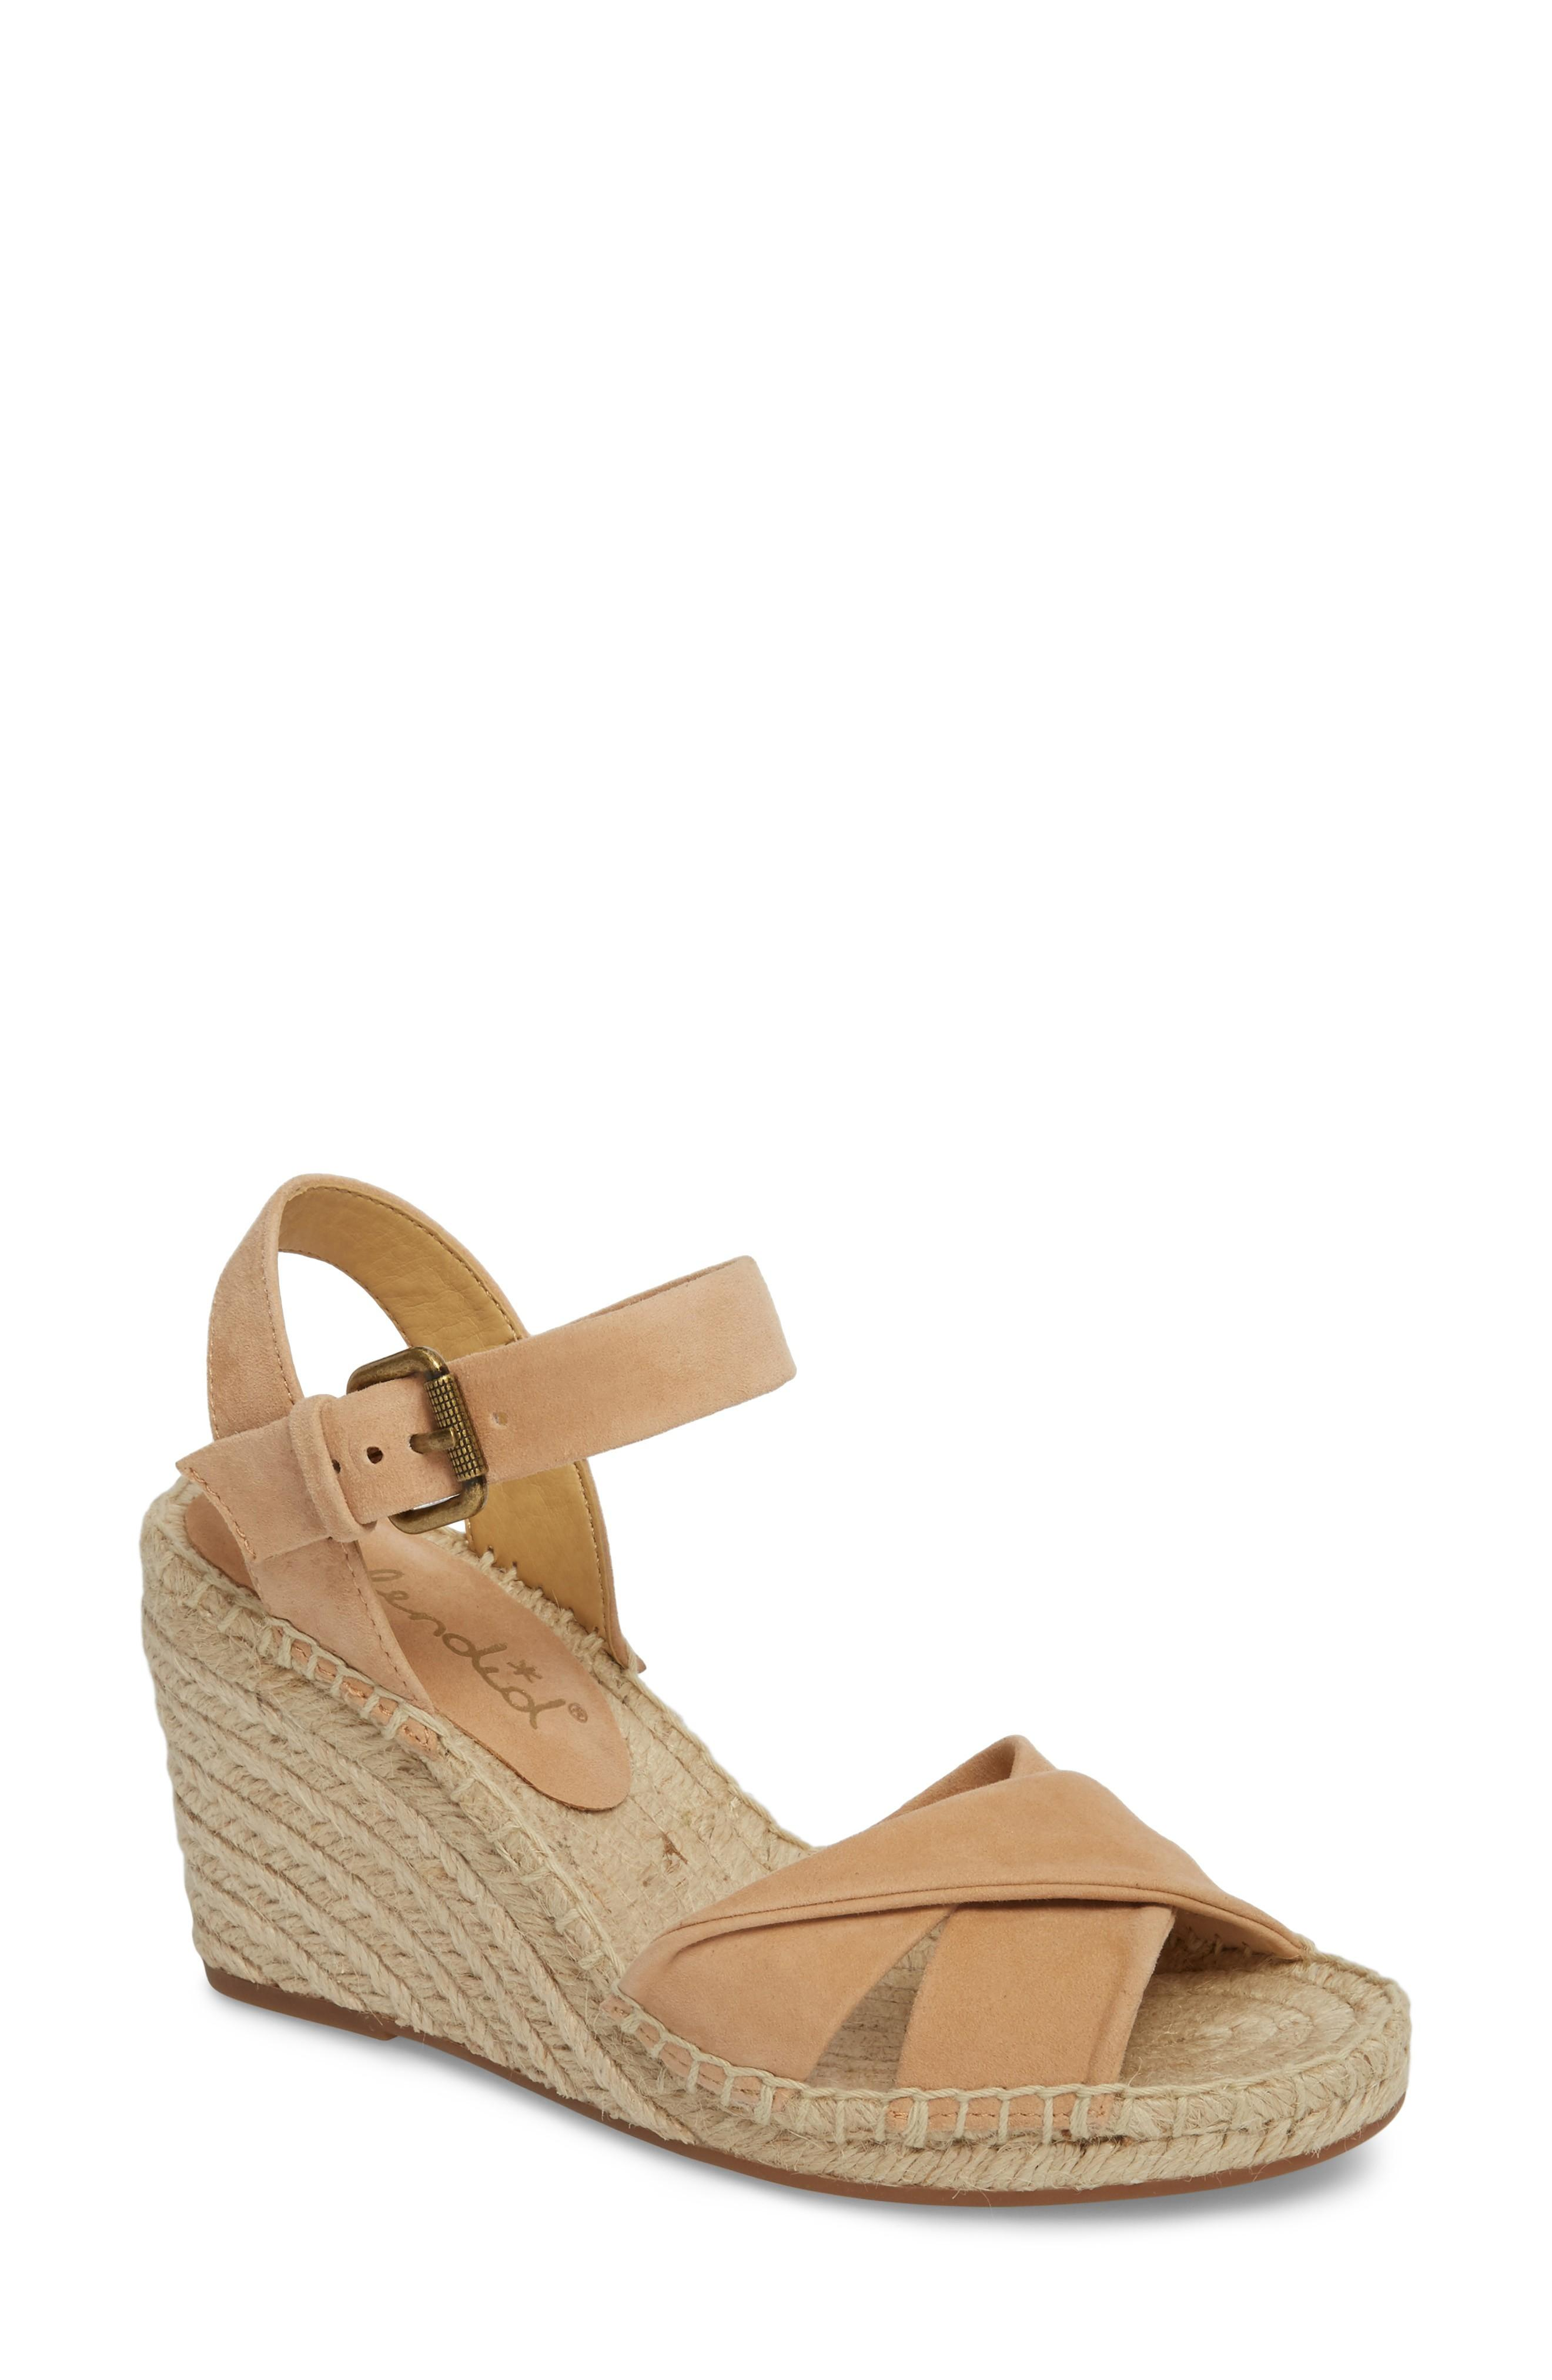 5f689a60eff Style Name  Splendid Fairfax Espadrille Wedge Sandal (Women). Style Number   5528099.